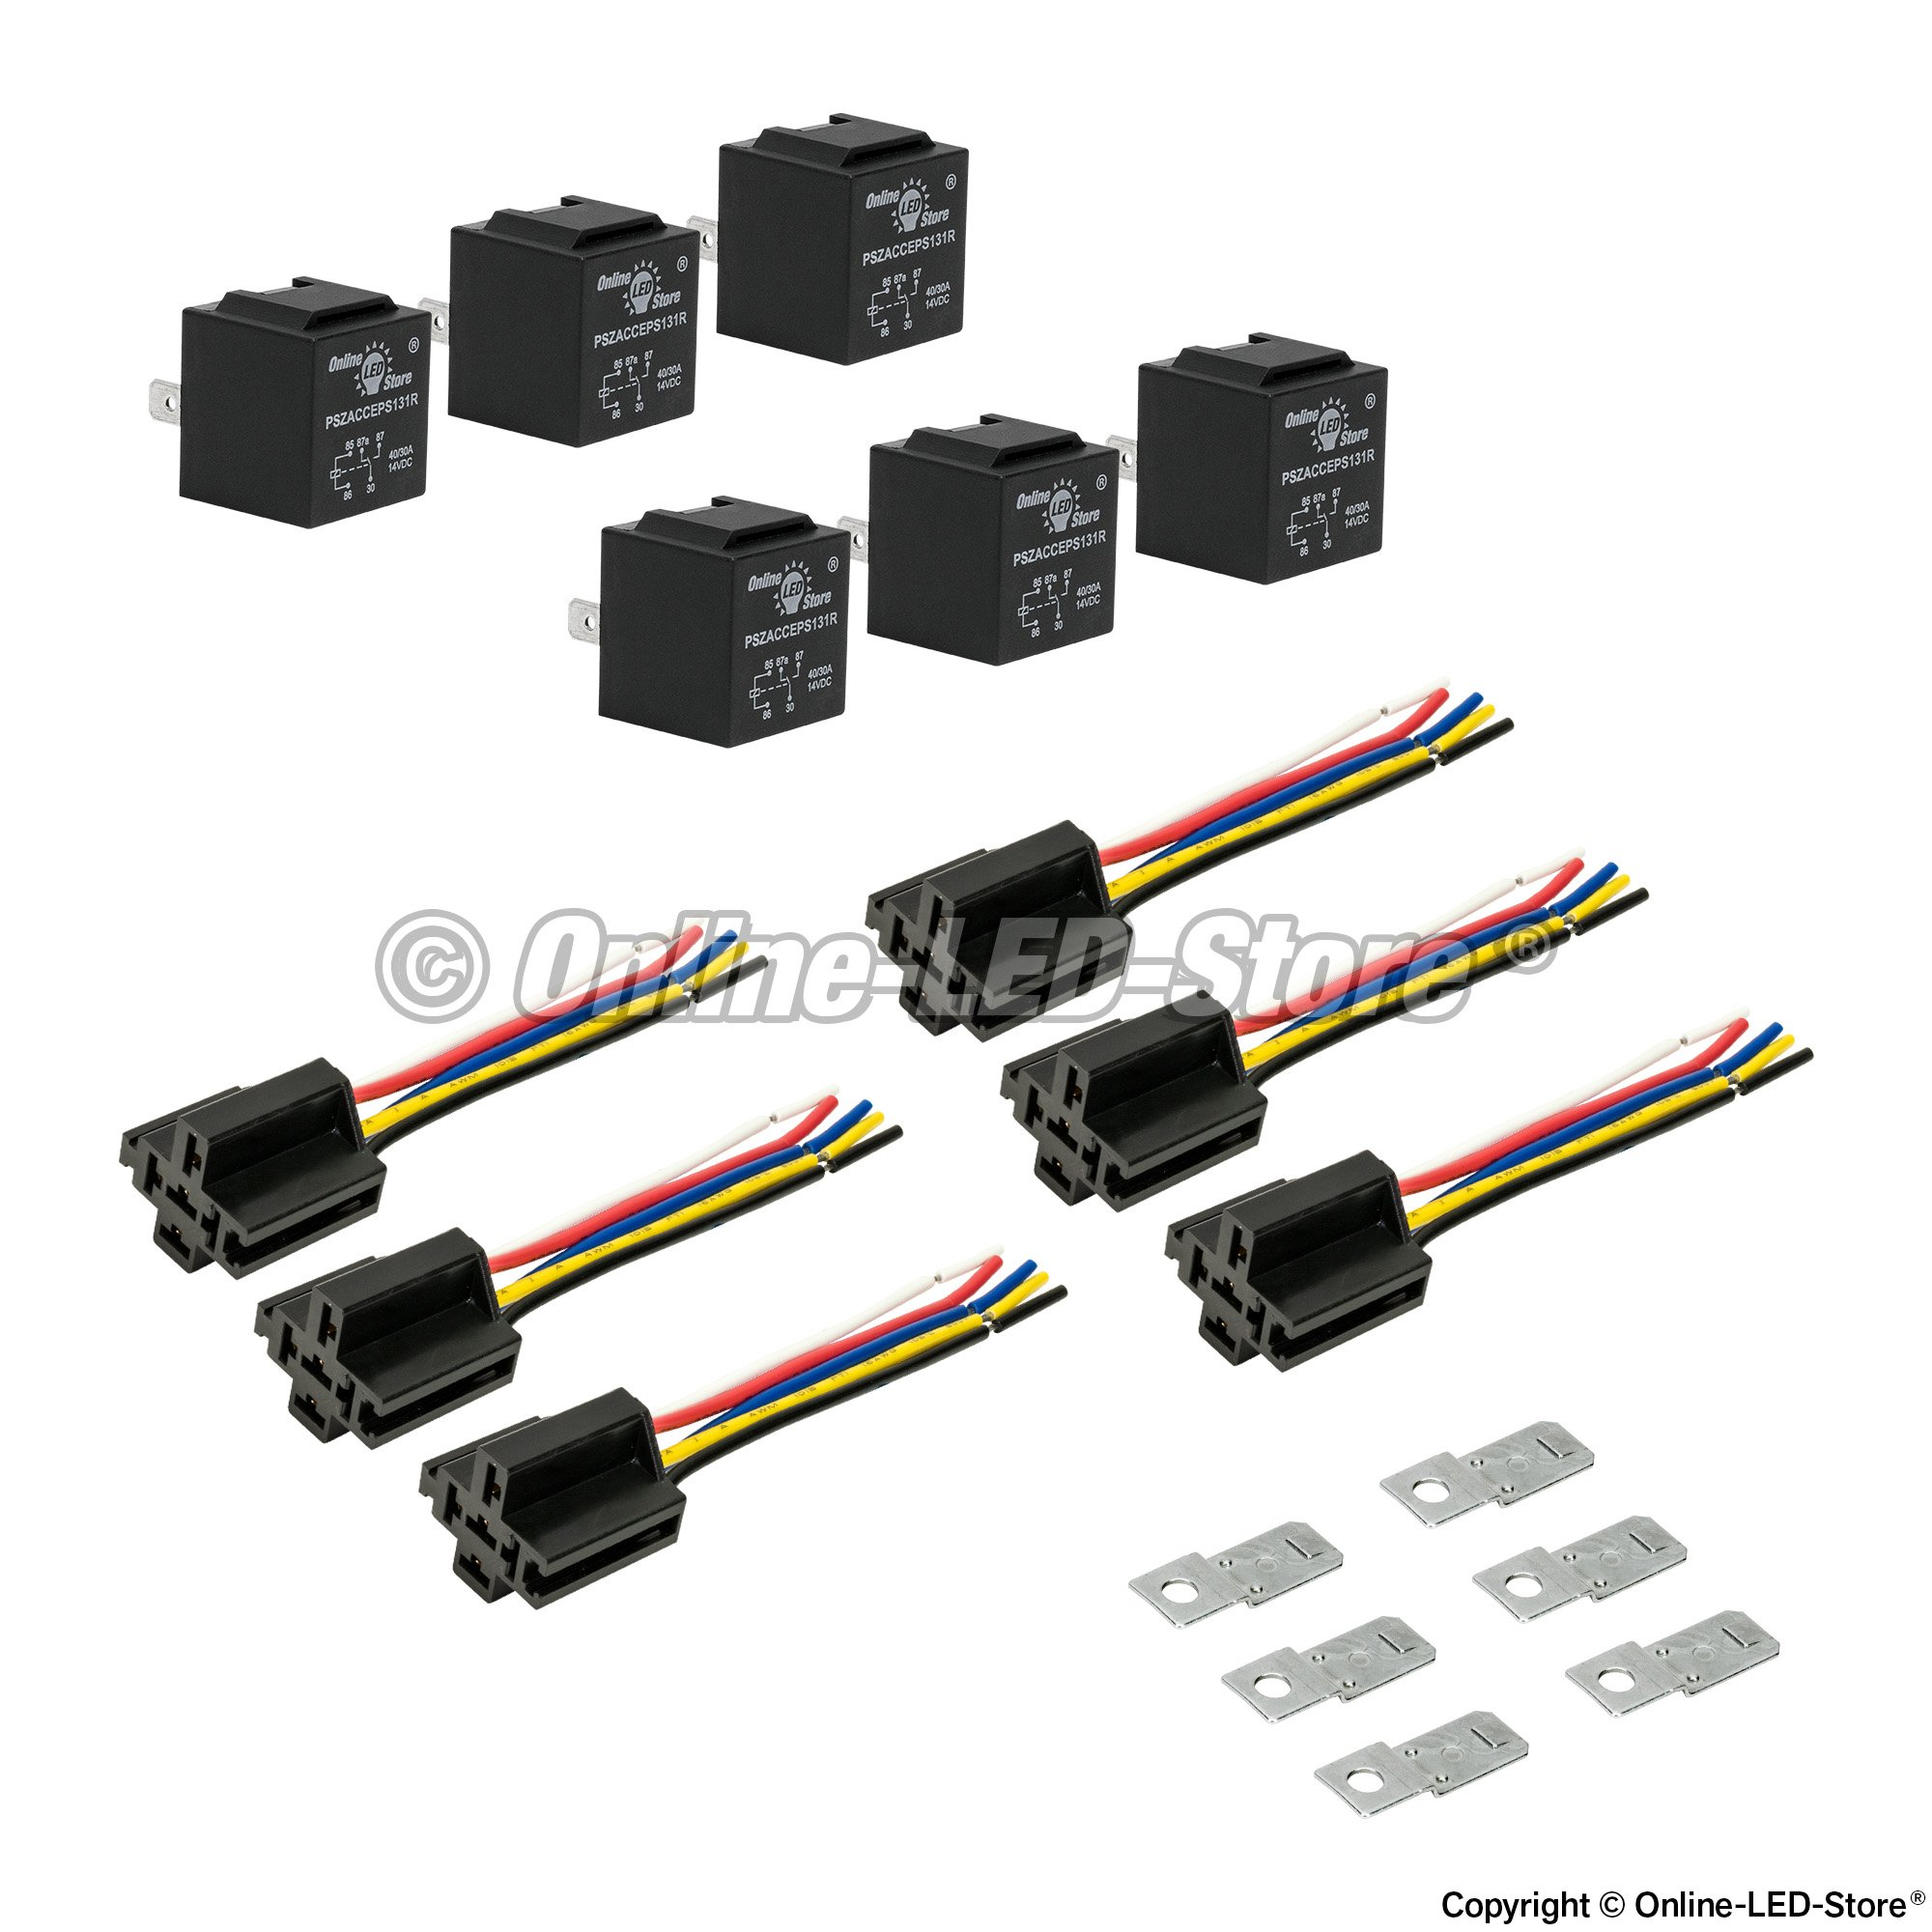 Ols 12v 3040   5 Pin Spdt Bosch Style Electrical Relay Harness Set Pack Of 6 Pszacceps175r Pszacceps175r on electrical switches for cars